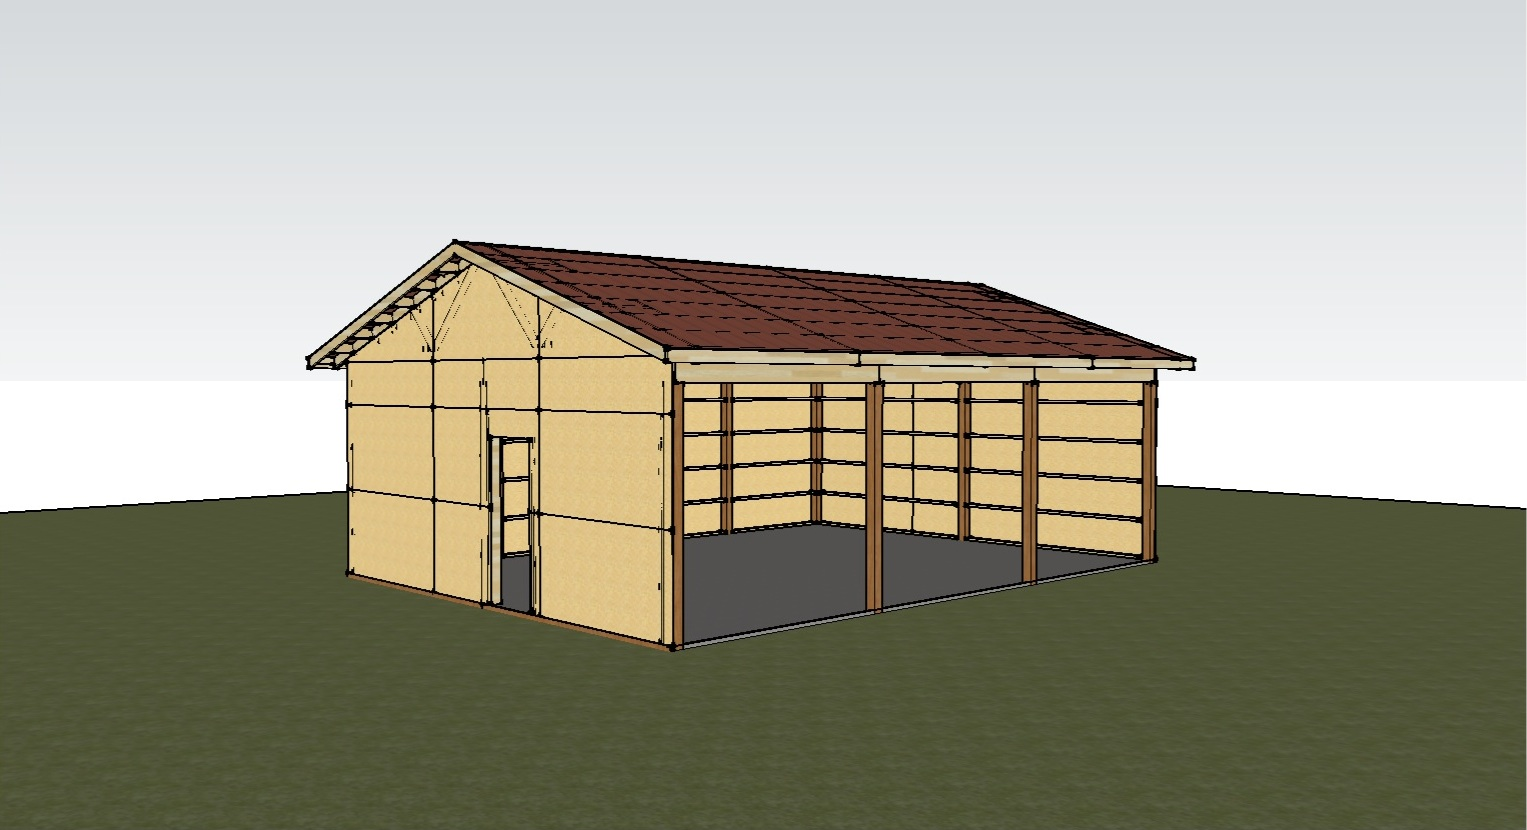 pole barn plan joy studio design gallery best design ForPole Barn Drawings